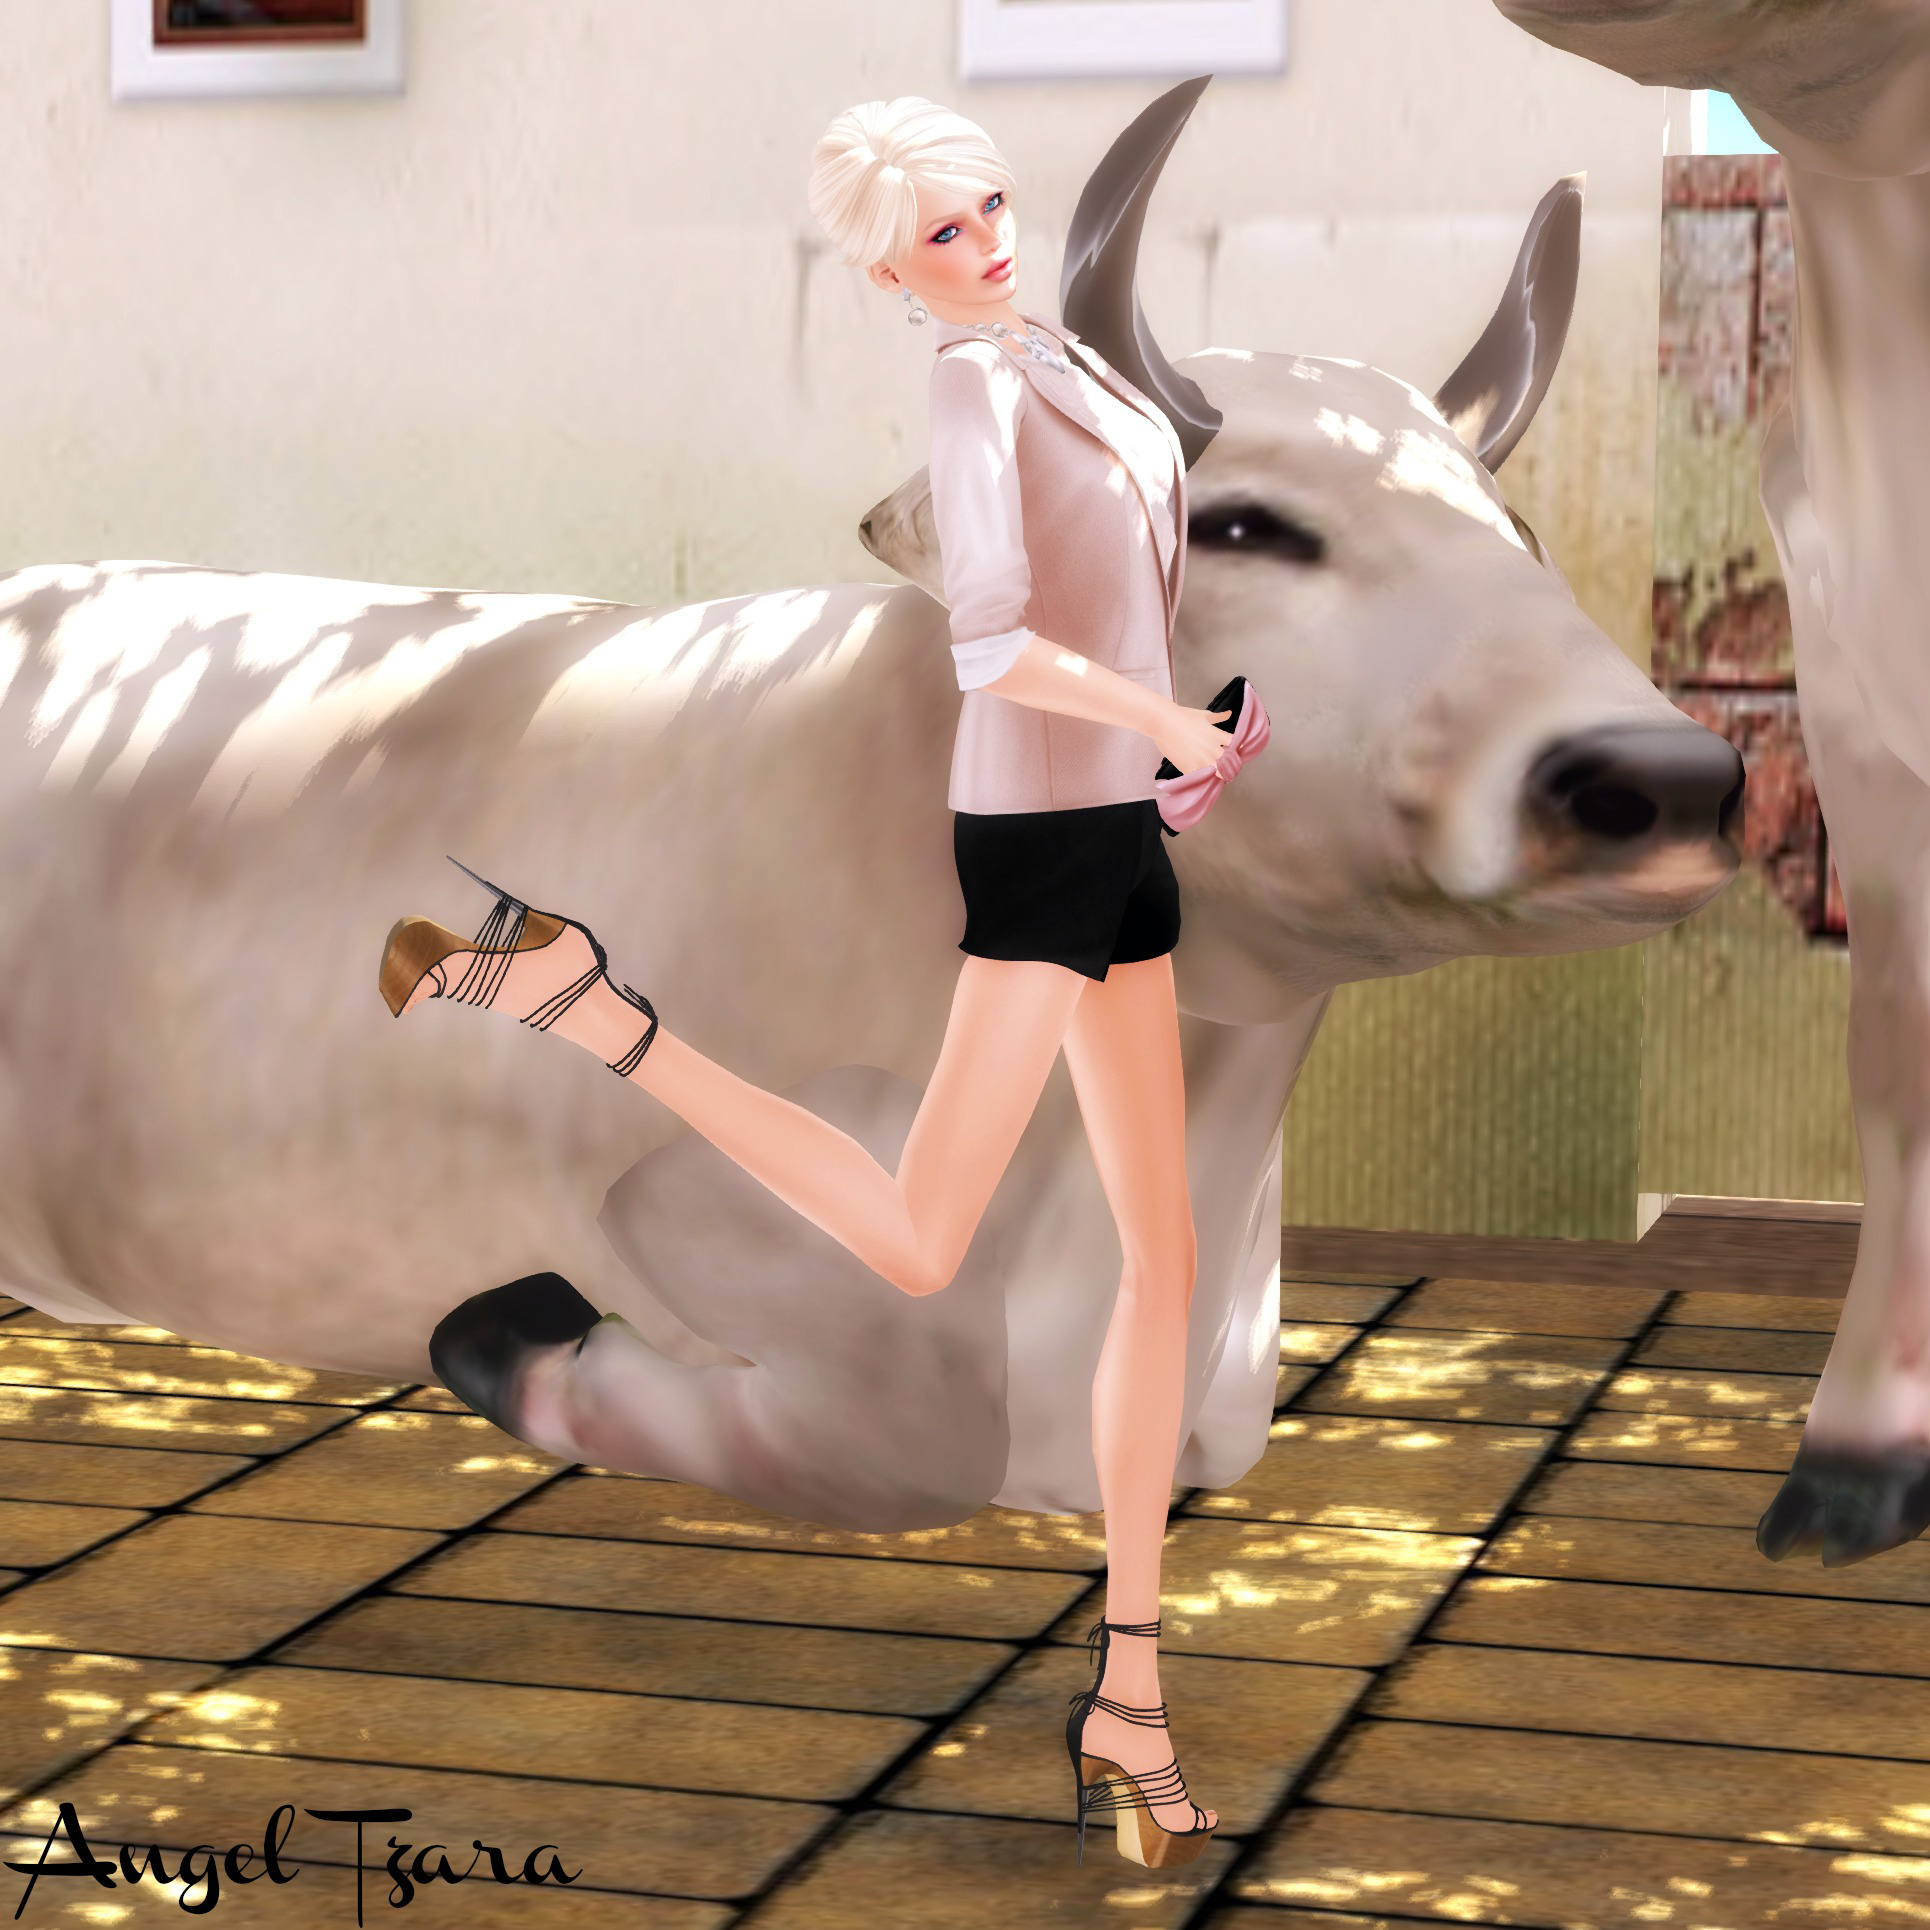 Dancing with Cows (f)